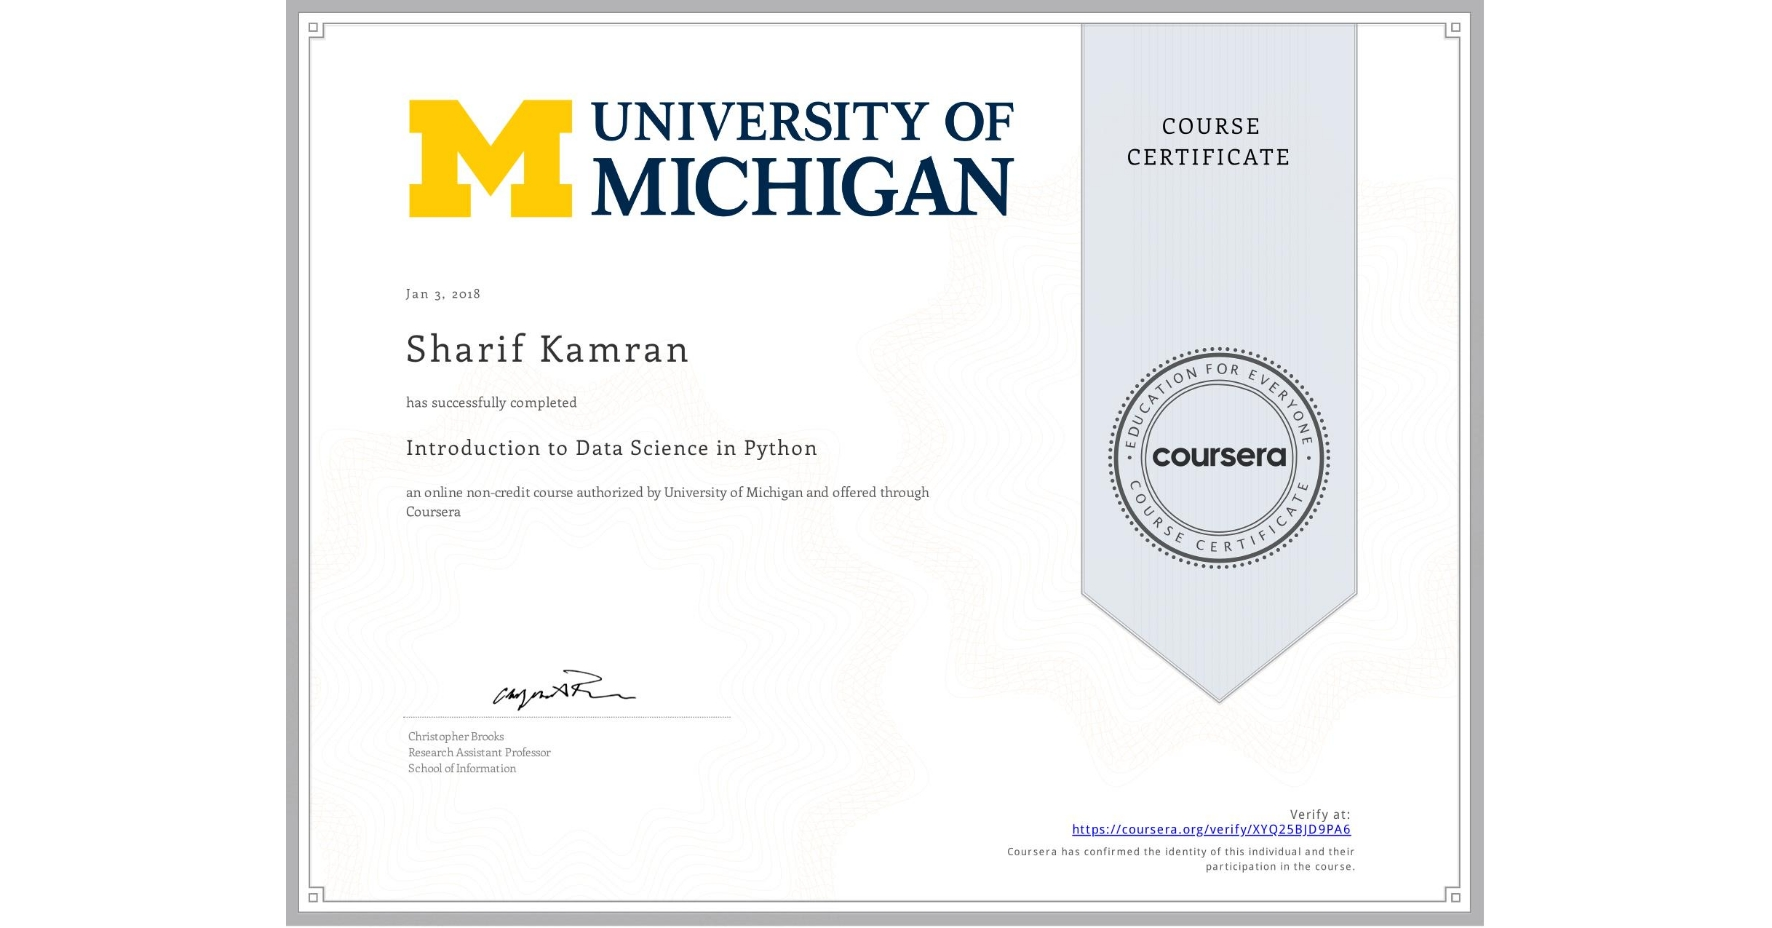 View certificate for Sharif Kamran, Introduction to Data Science in Python, an online non-credit course authorized by University of Michigan and offered through Coursera